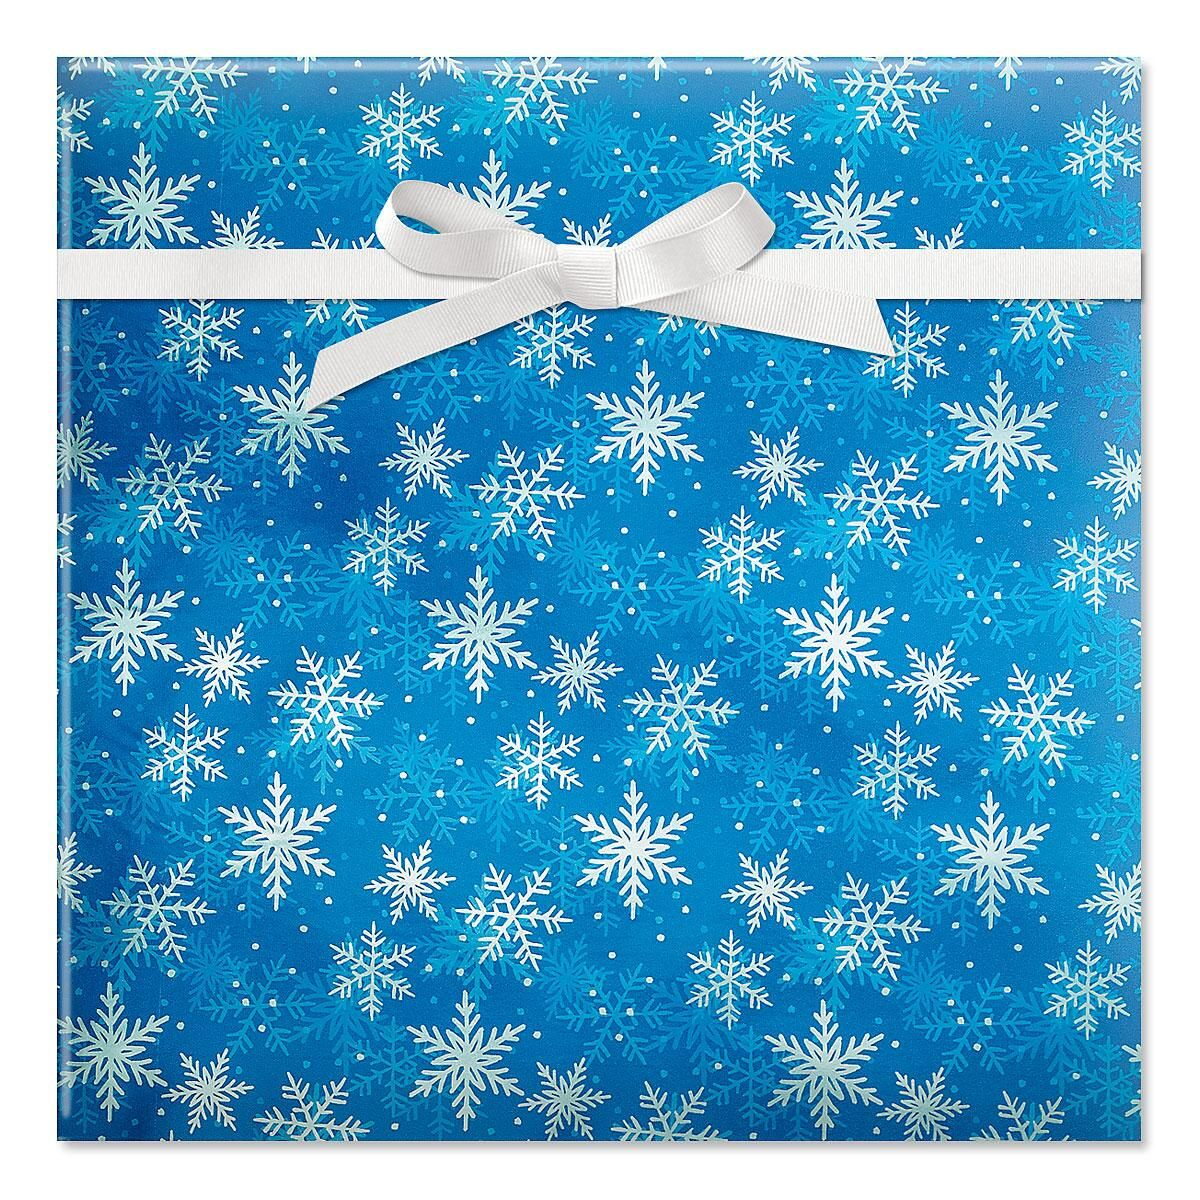 Shimmer Flakes On Blue Foil Rolled Gift Wrap Current Catalog